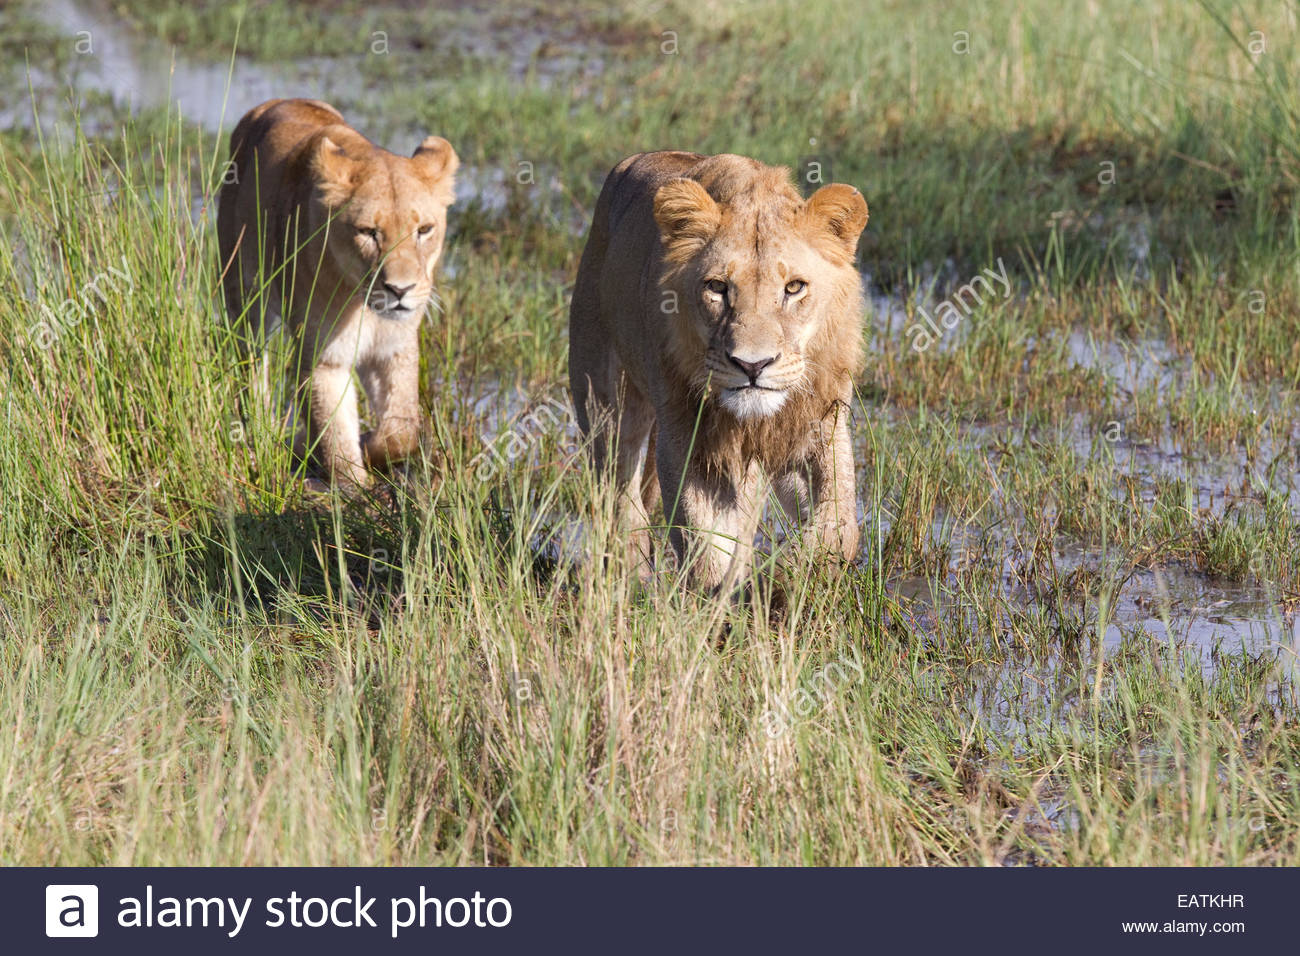 South African lions, Panthera leo krugeri, walking over wet ground. - Stock Image